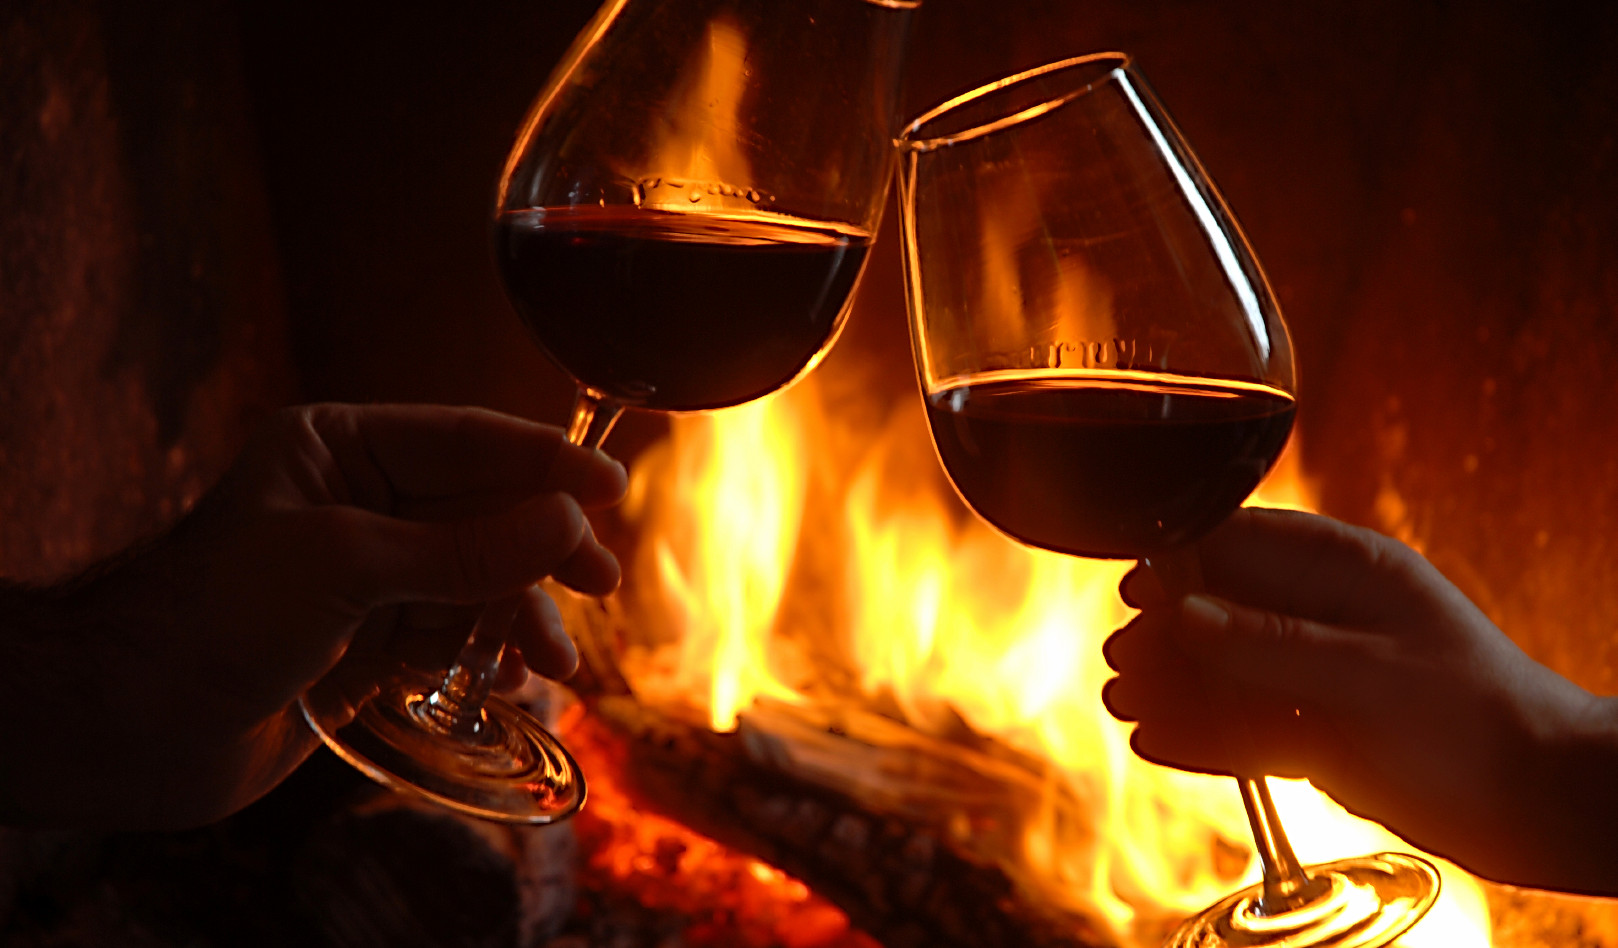 Local Wine by the fireplace!